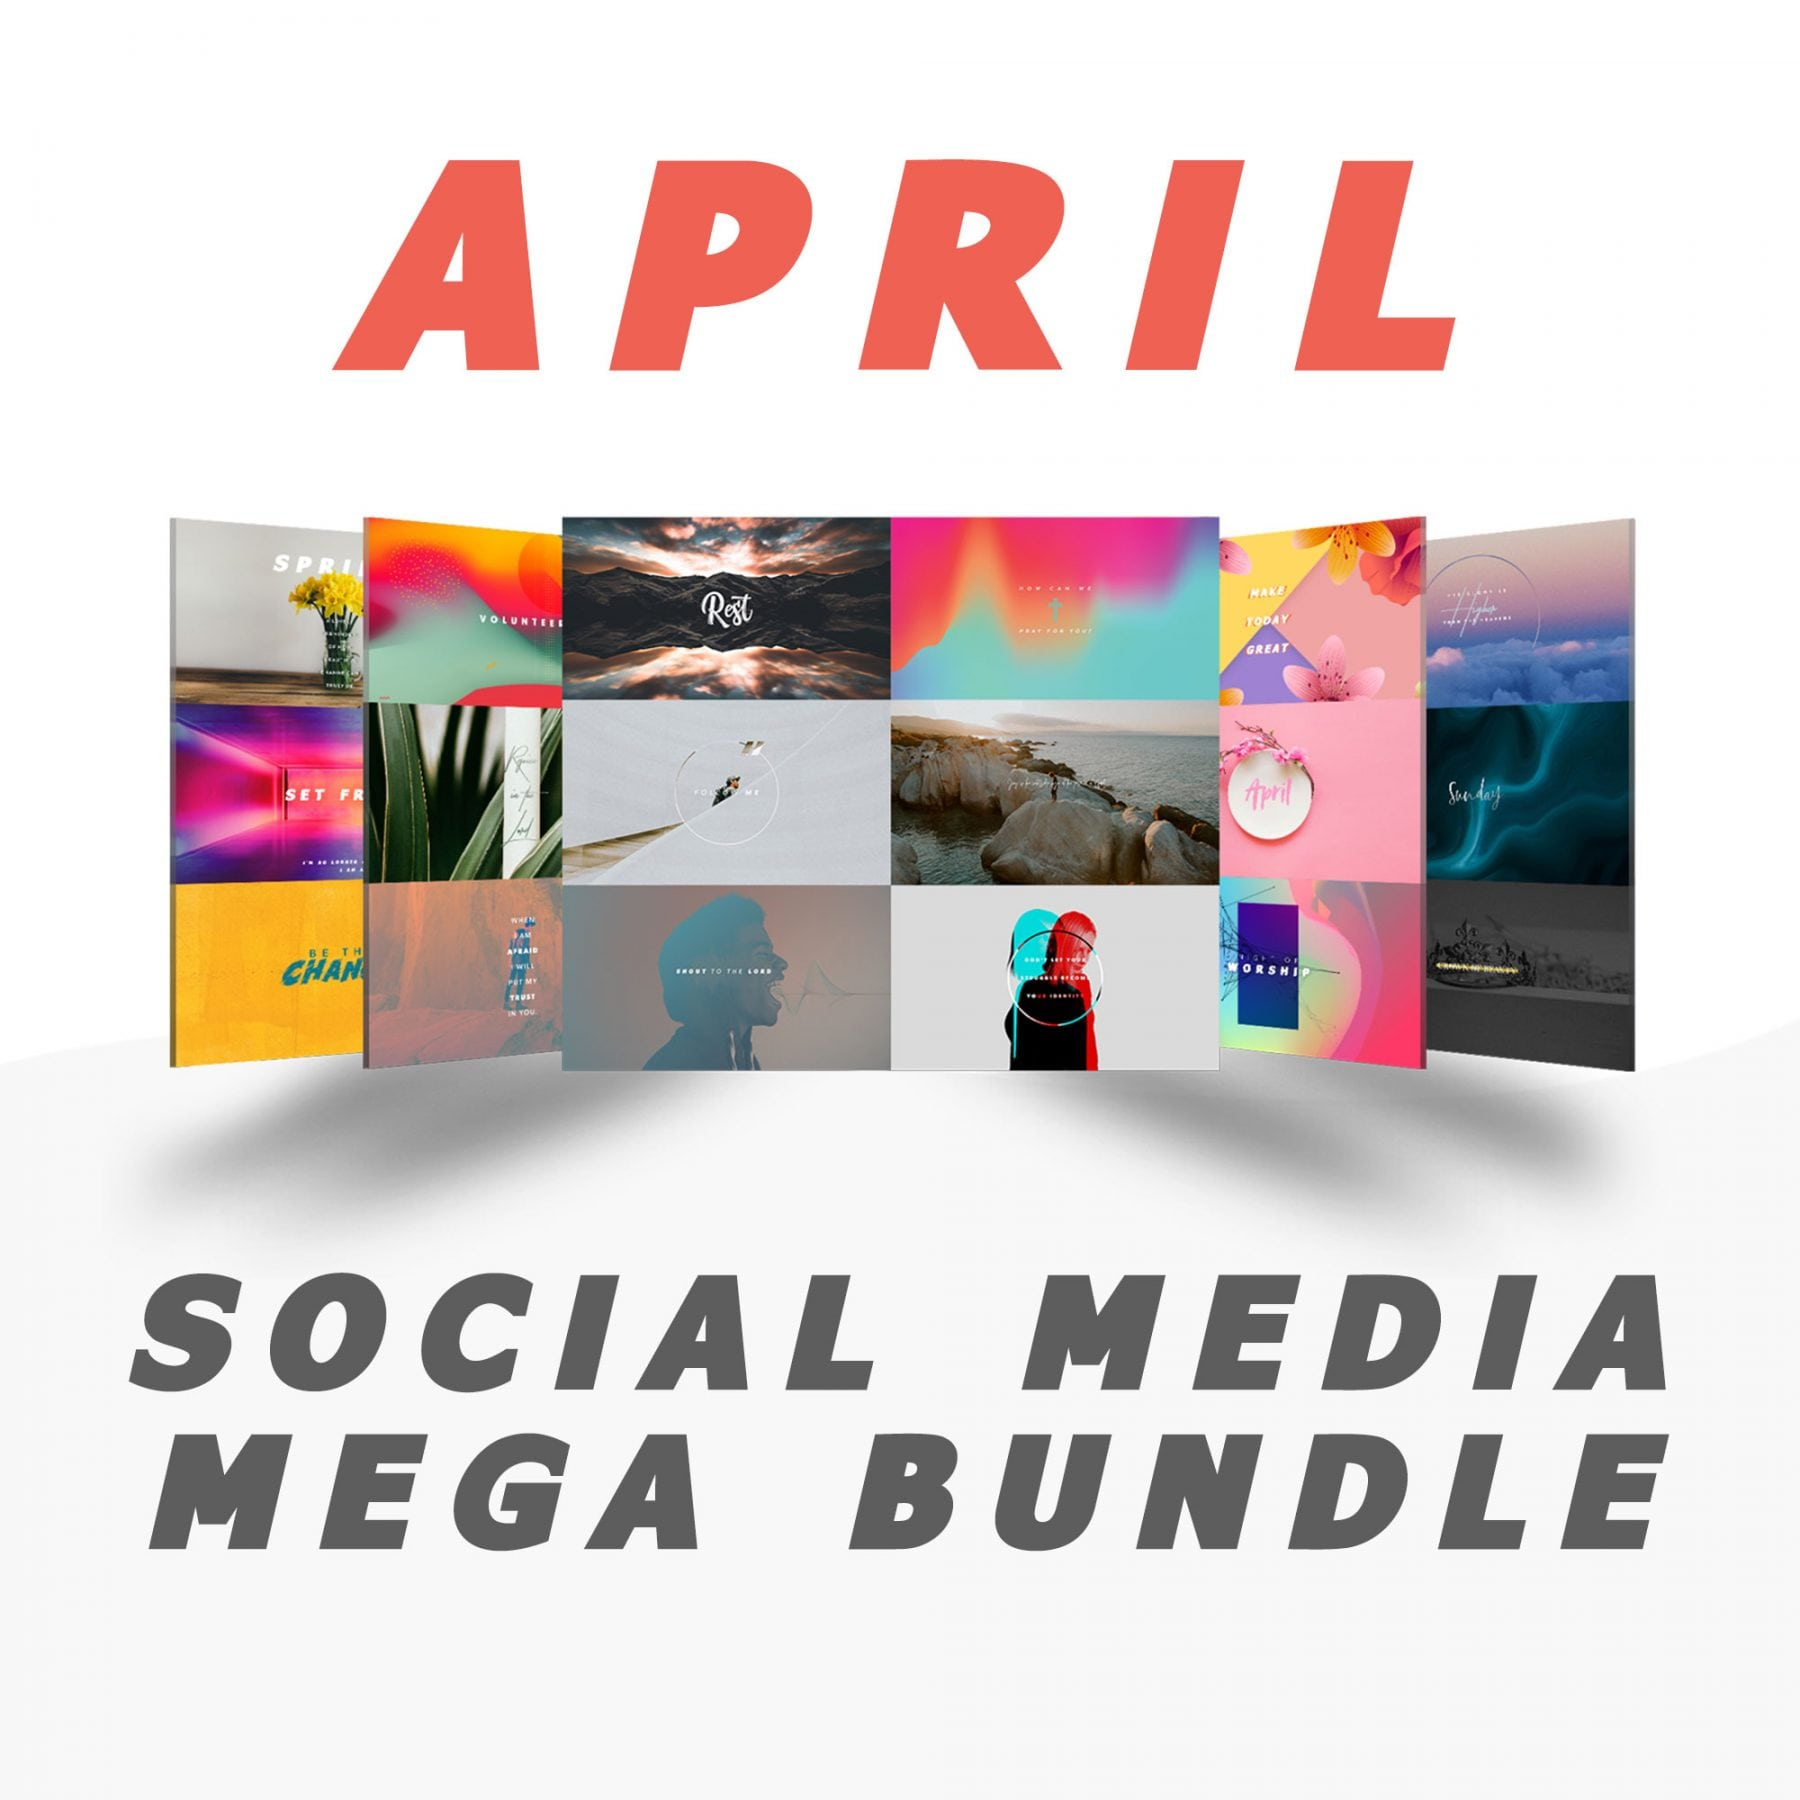 April Mega Bundle